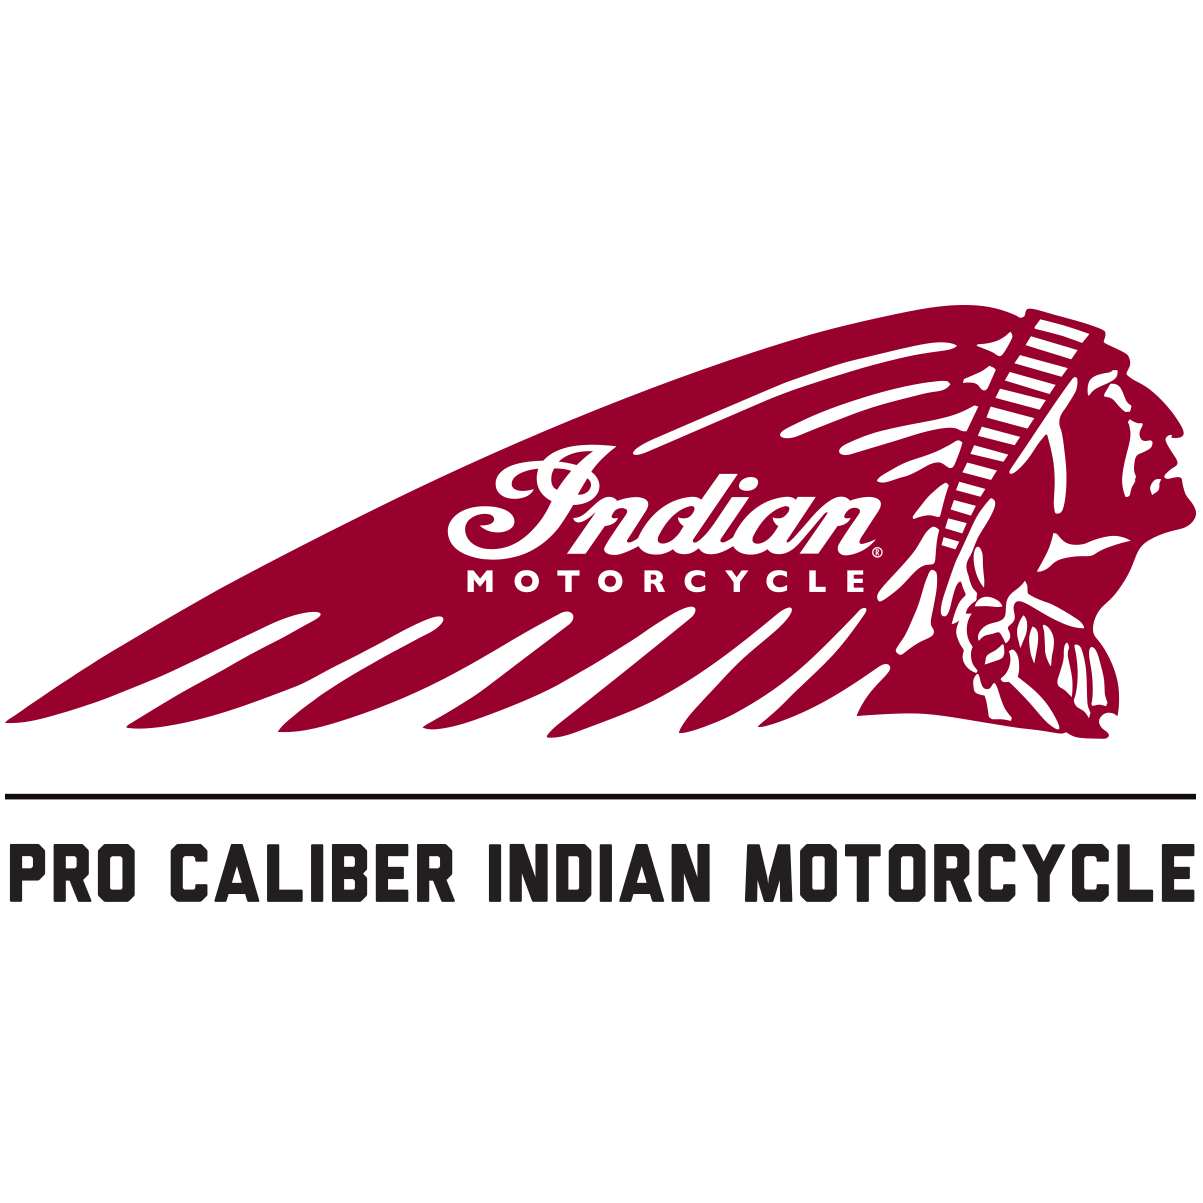 Pro Caliber Indian Motorcycle